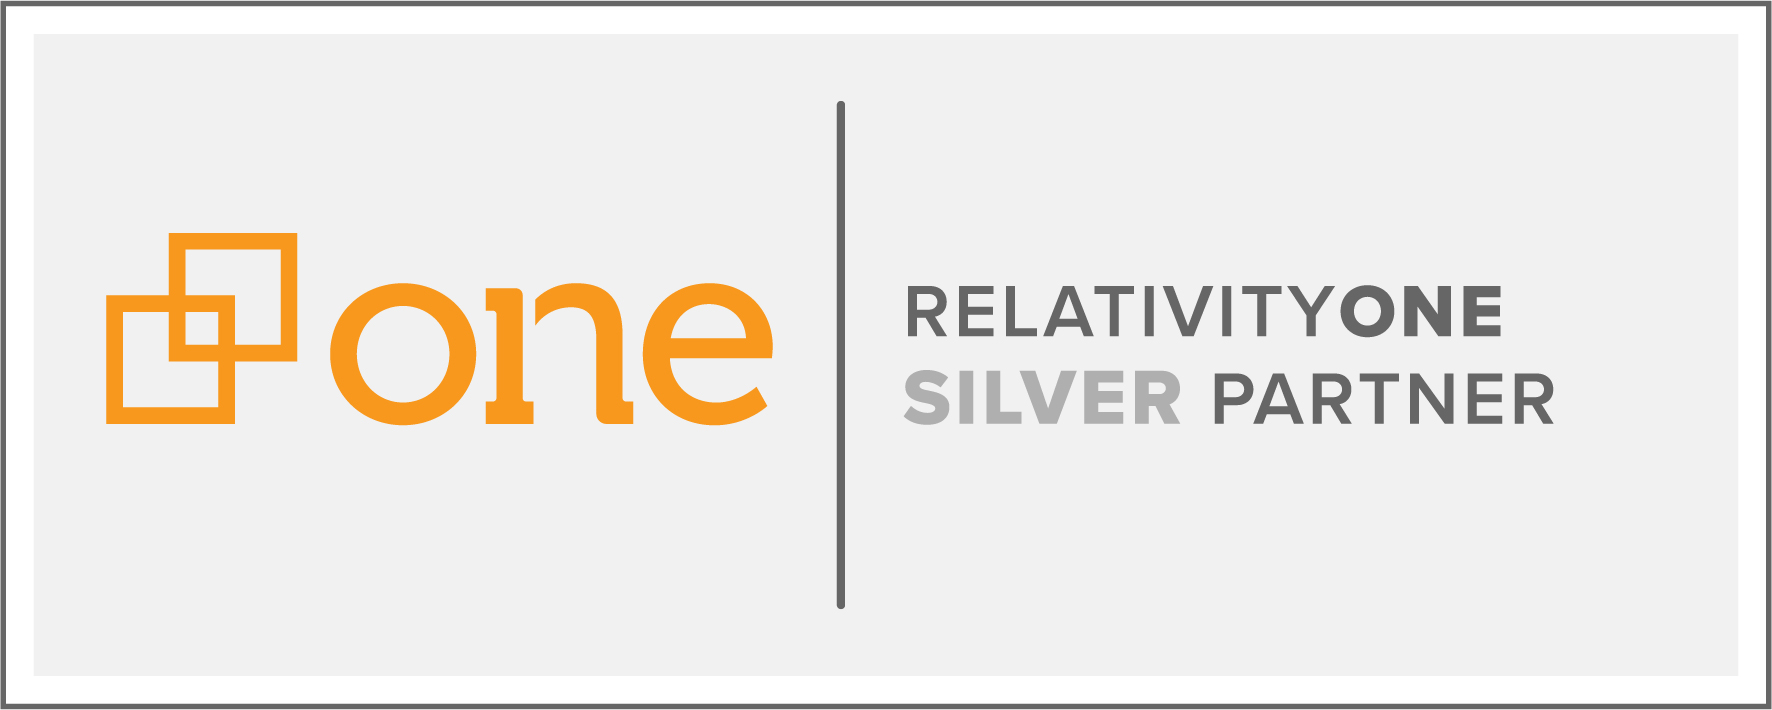 rel-one-silver-partner-rgb